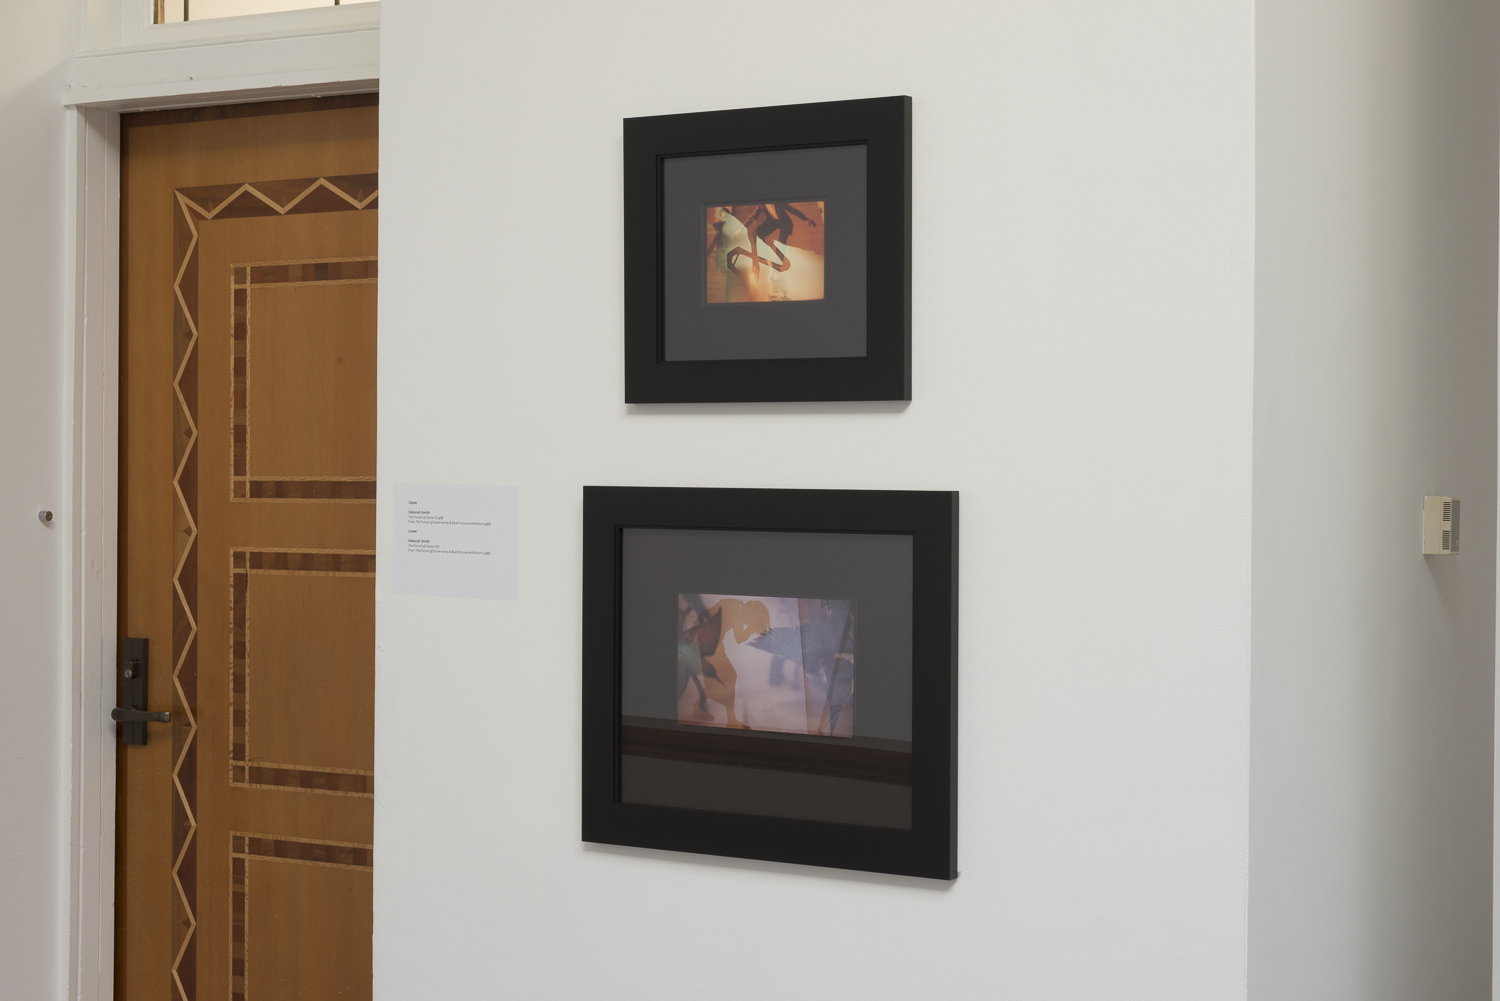 Real Pictures: Imaging XX installation, Gus Fisher Gallery, Auckland, June 2017. Deborah Smith.